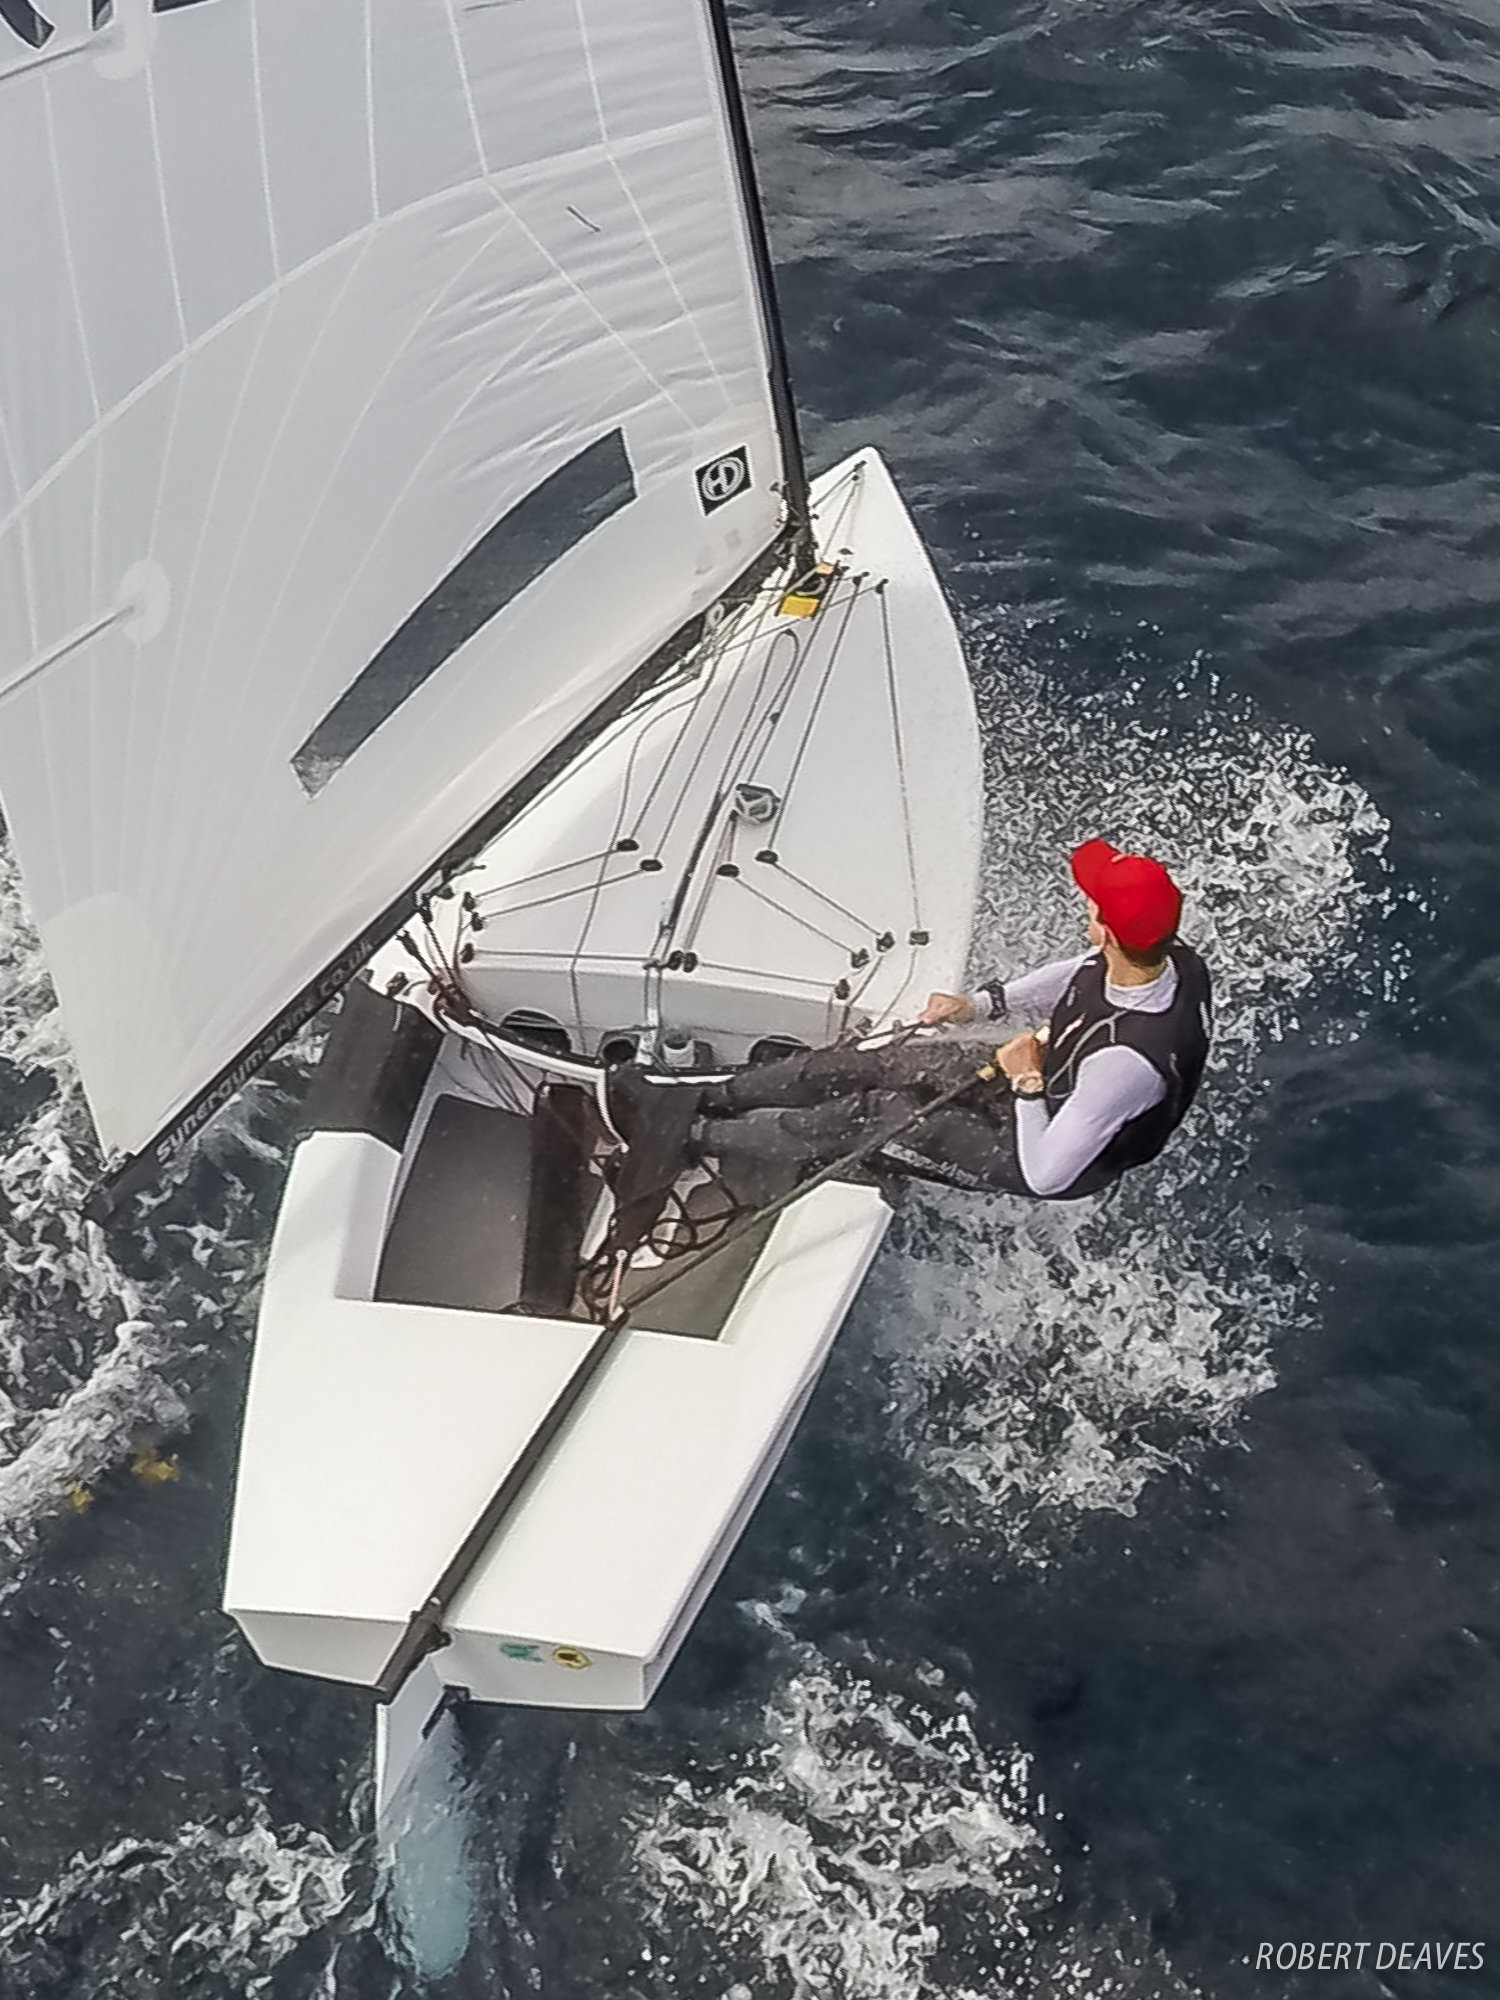 Nick Craig at the OK Dinghy Worlds in Barbados. Photo Alistair Deaves.